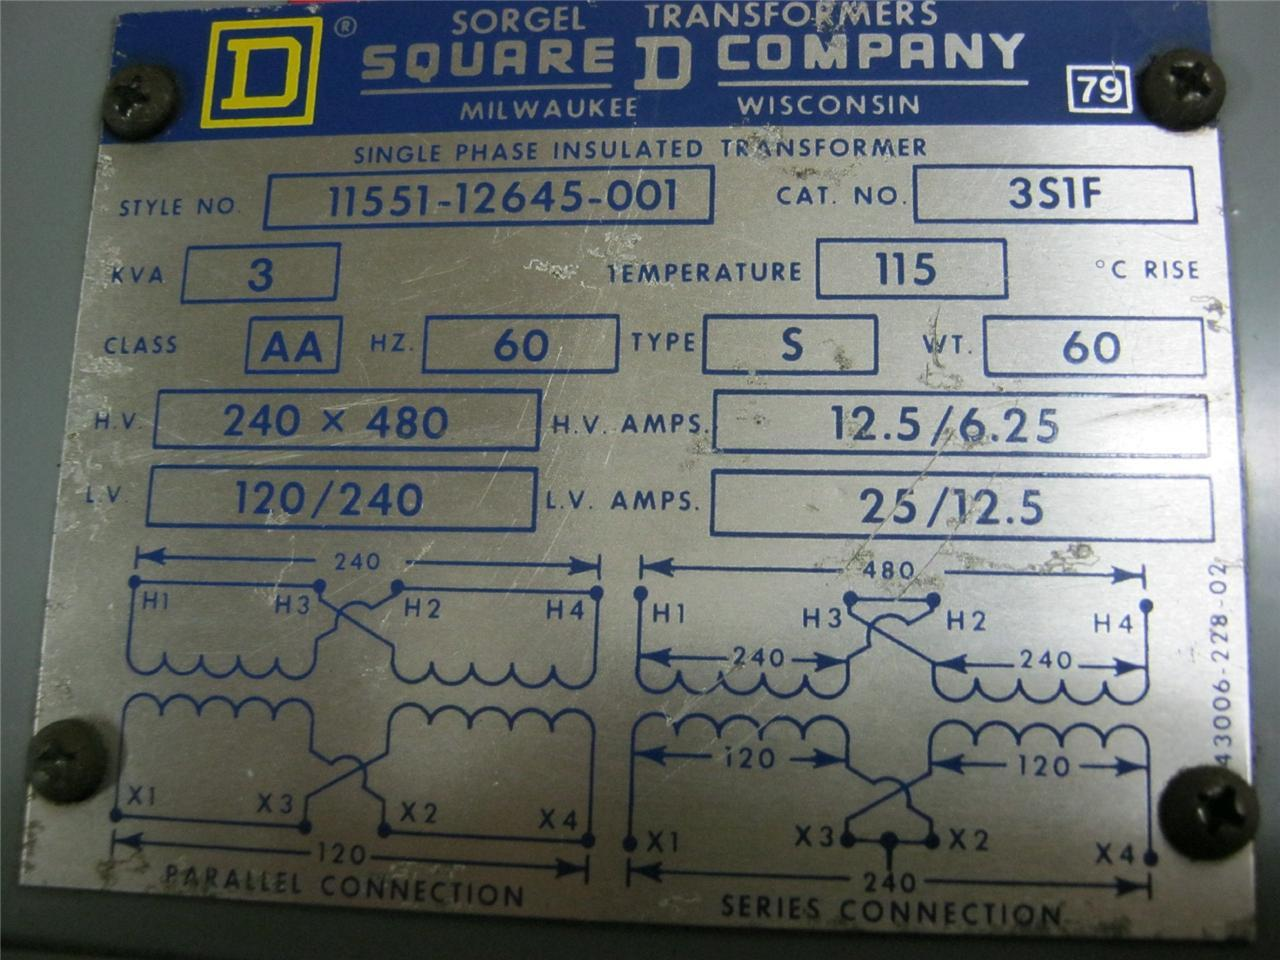 Square D 3 Kva Single Phase Insulated Transformer 351f